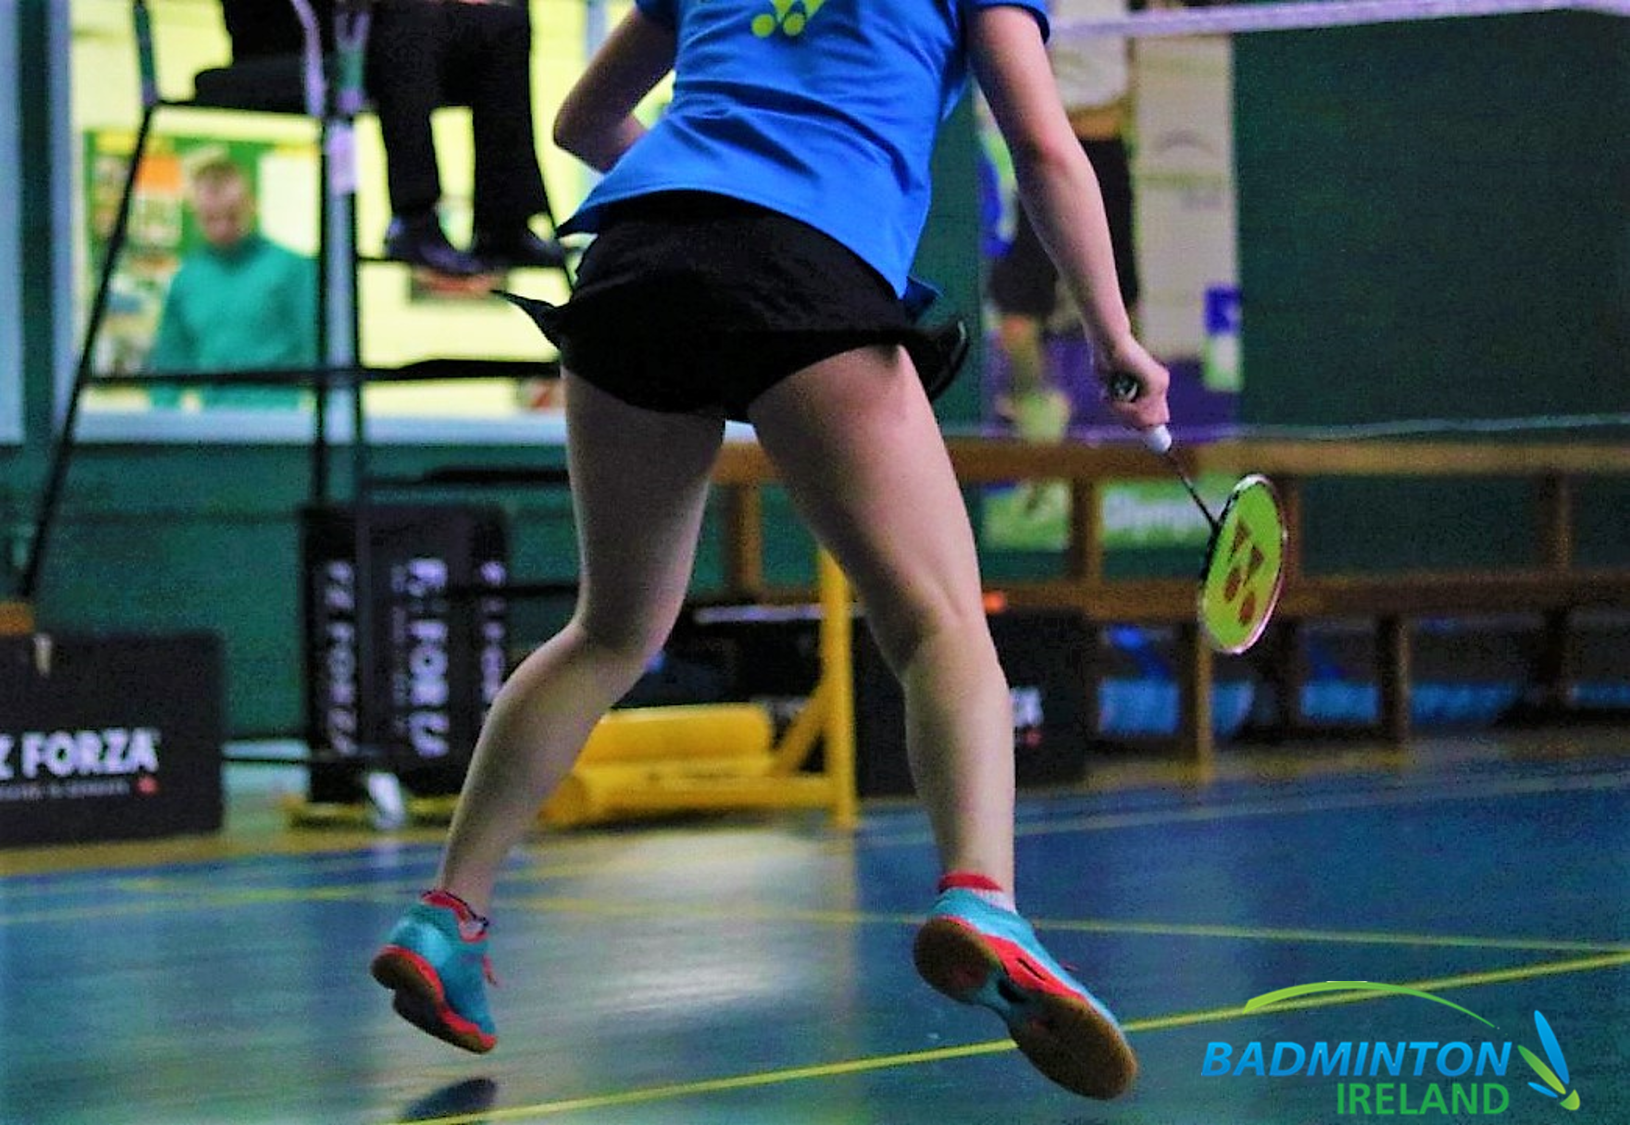 Pretension stance 2 - 6 Ways to improve your badminton movement